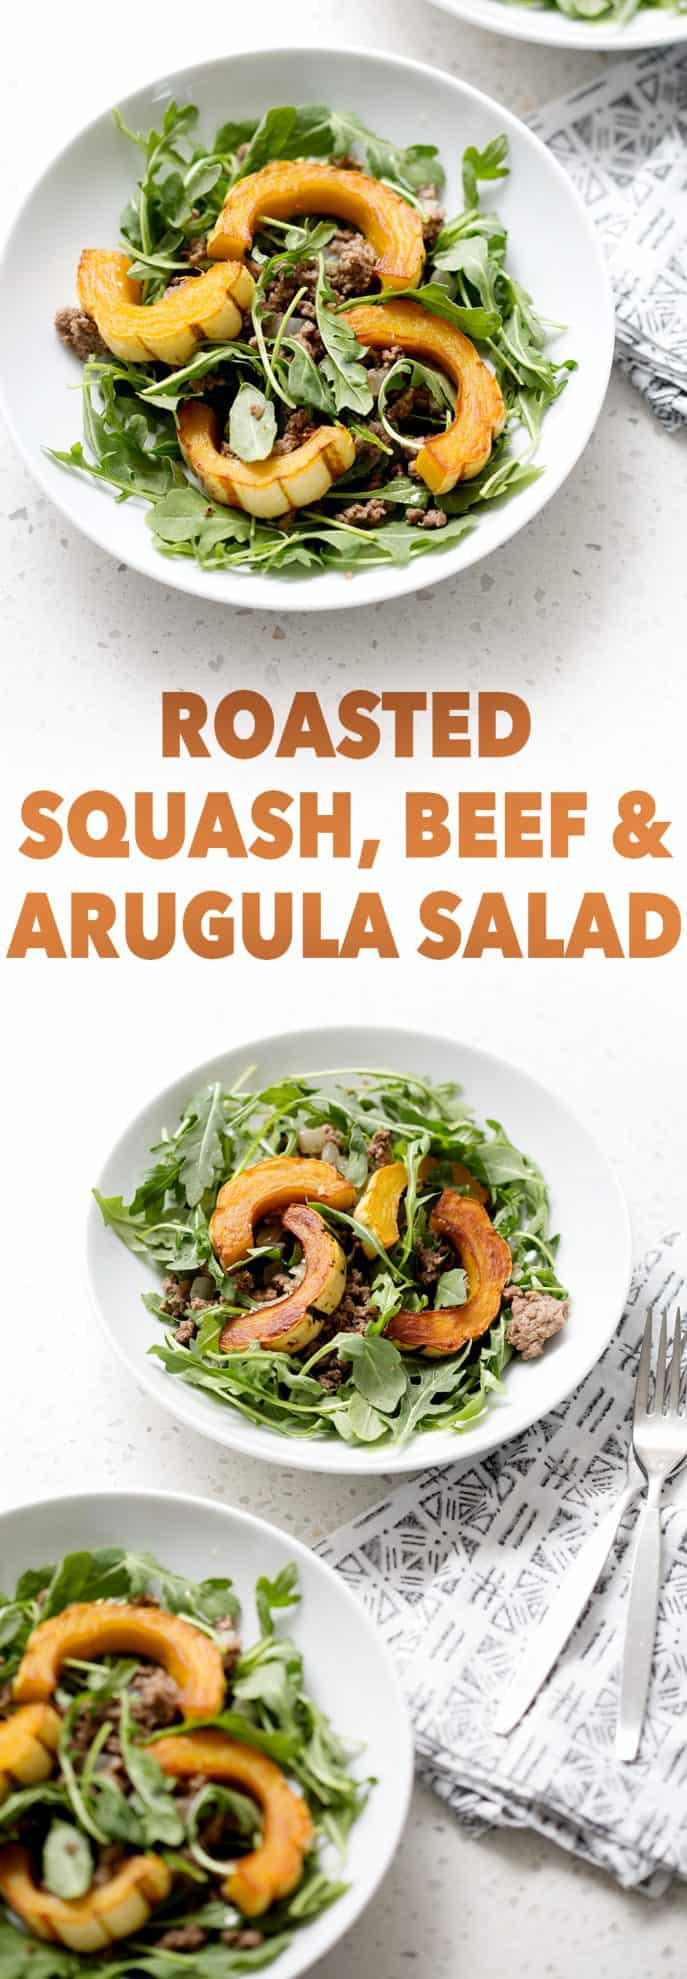 A nutrient dense fall salad that healthy and delicious. The bonus is that this recipe is super easy. You don't even have to peel the squash, as it's totally edible! This recipe is allergy friendly (gluten, dairy, shellfish, nut, egg, and soy free) and suits the autoimmune protocol (AIP) and paleo diets.